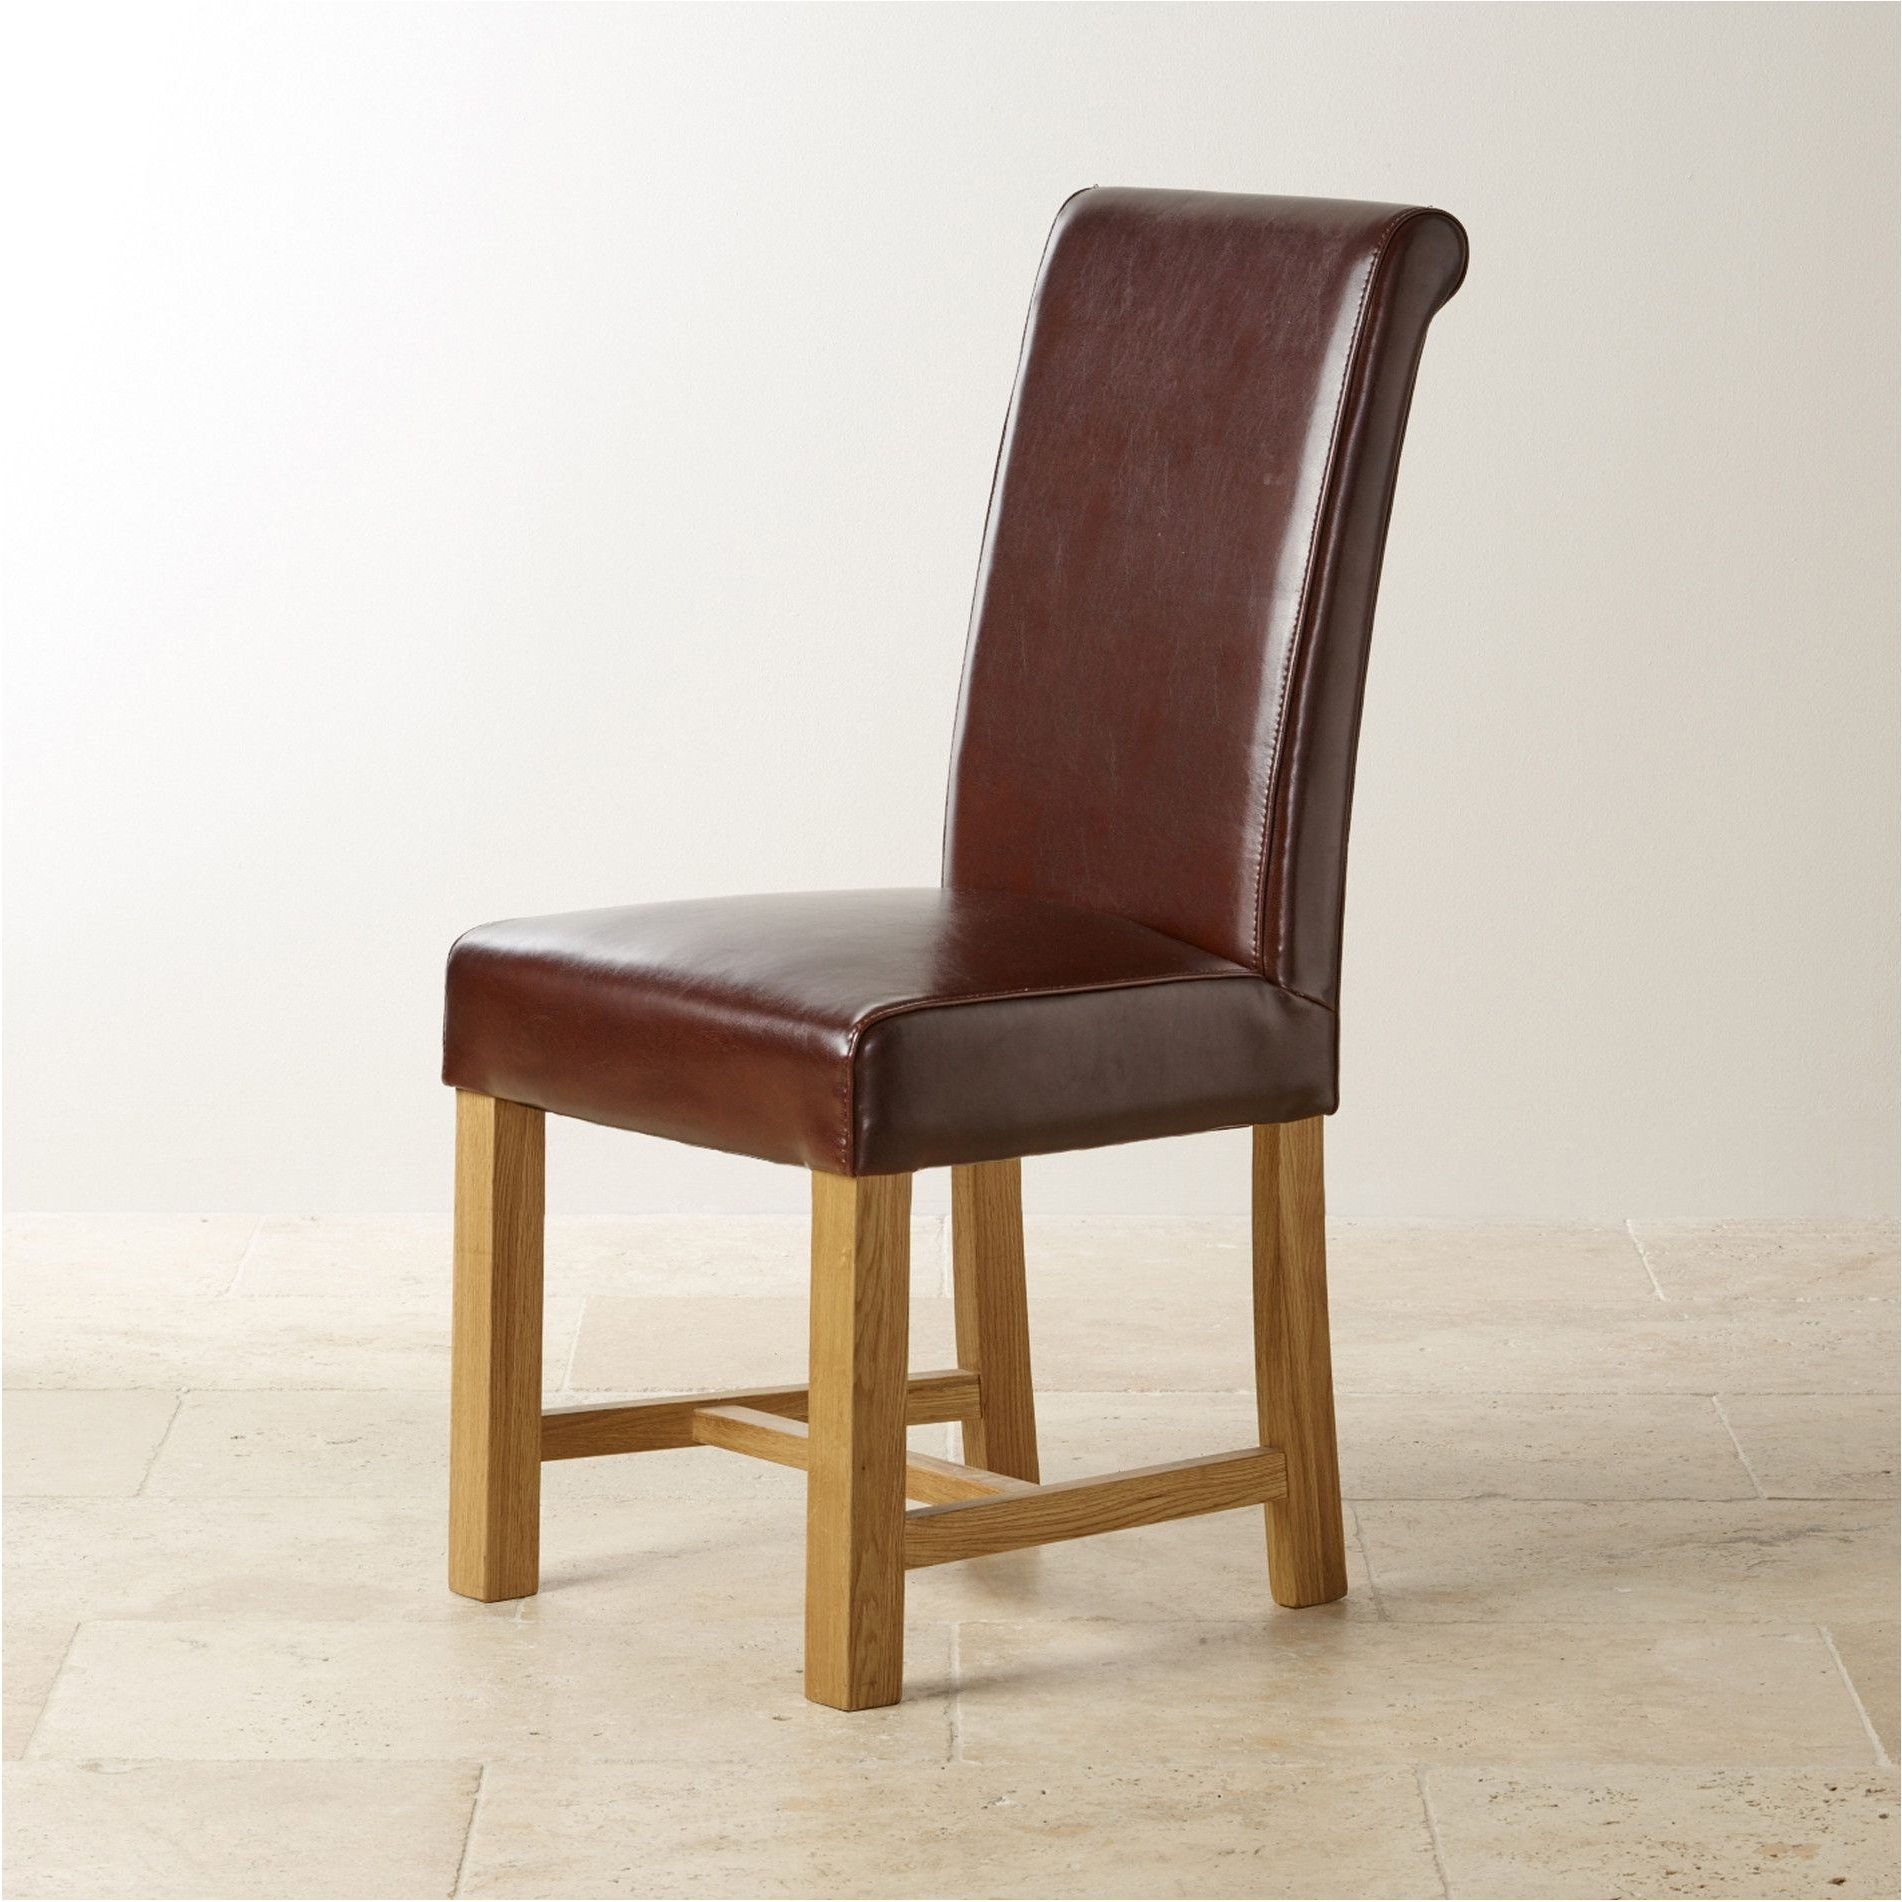 Real Leather Dining Chairs For Well Known Lovely Real Leather Designer Dining Chair Grey White And Black Uk (View 6 of 25)